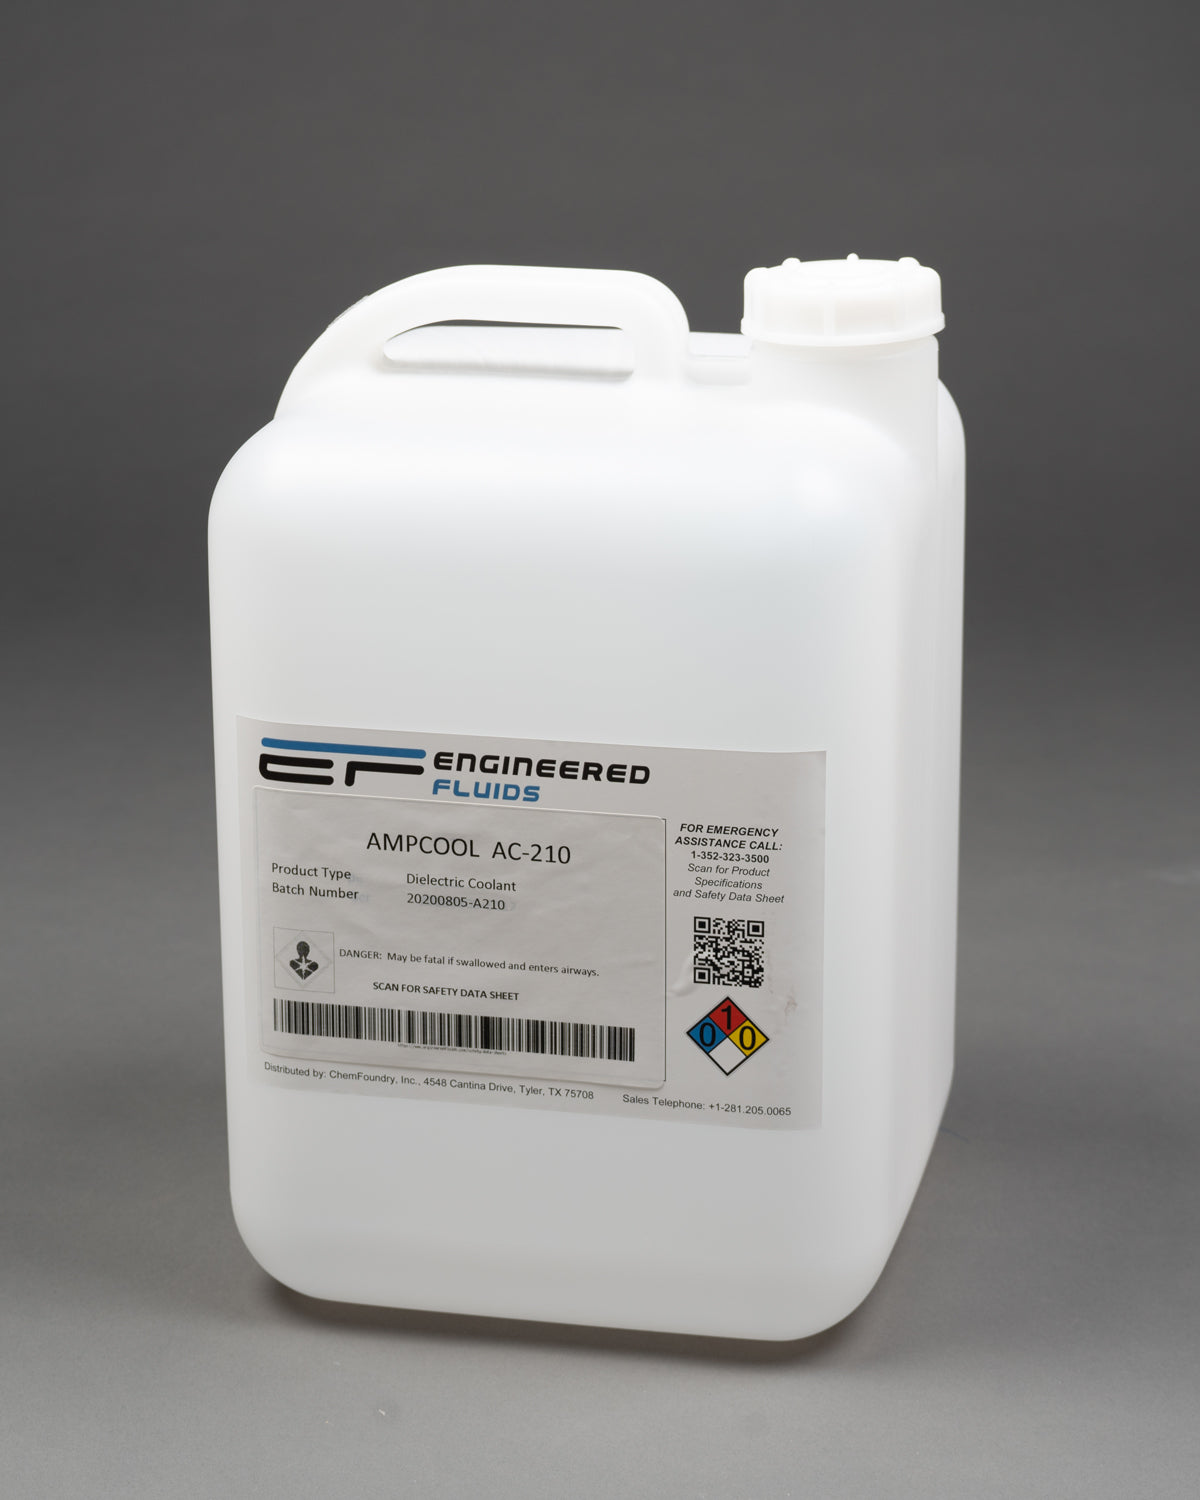 AmpCool® AC-210 Dielectric Coolant & Lubricant Questions & Answers